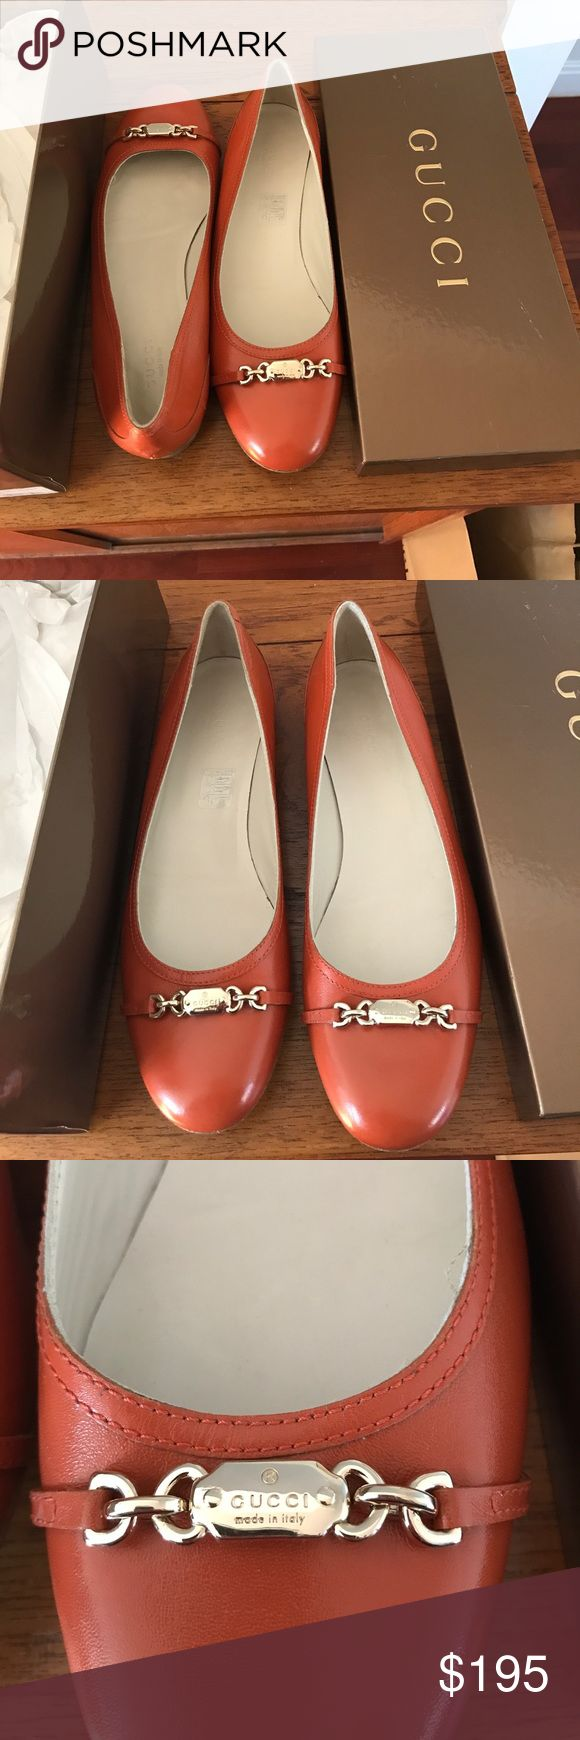 Gucci orange ballet flats with chain detail! Gorgeous. Classic. Excellent condition, small scuff mark as pictured. Only worn a few times. Gucci Shoes Flats & Loafers